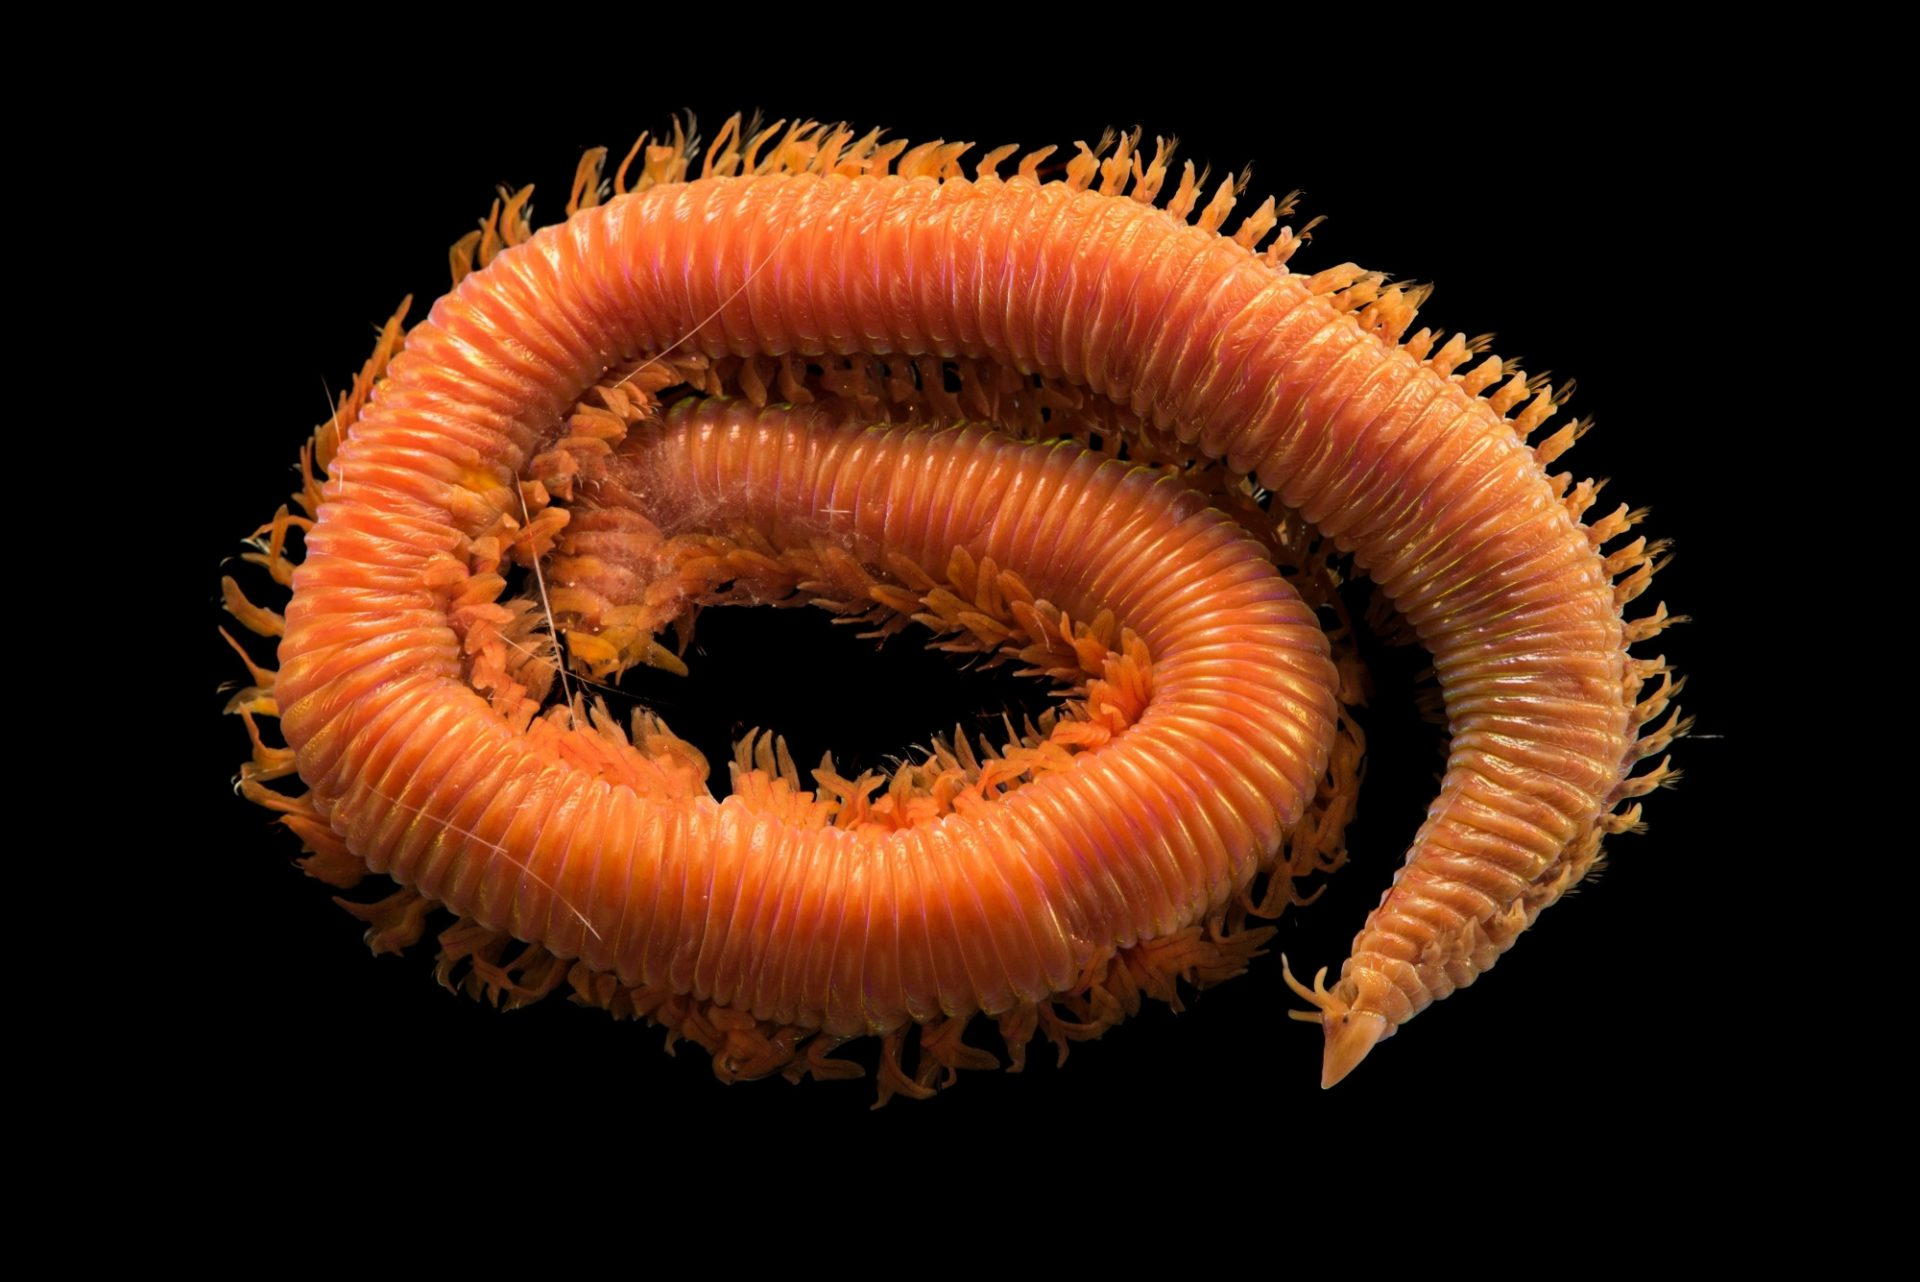 Photo: Crab trap worm (Lysarete brasiliensis) from Gulf Specimen Marine Laboratories.